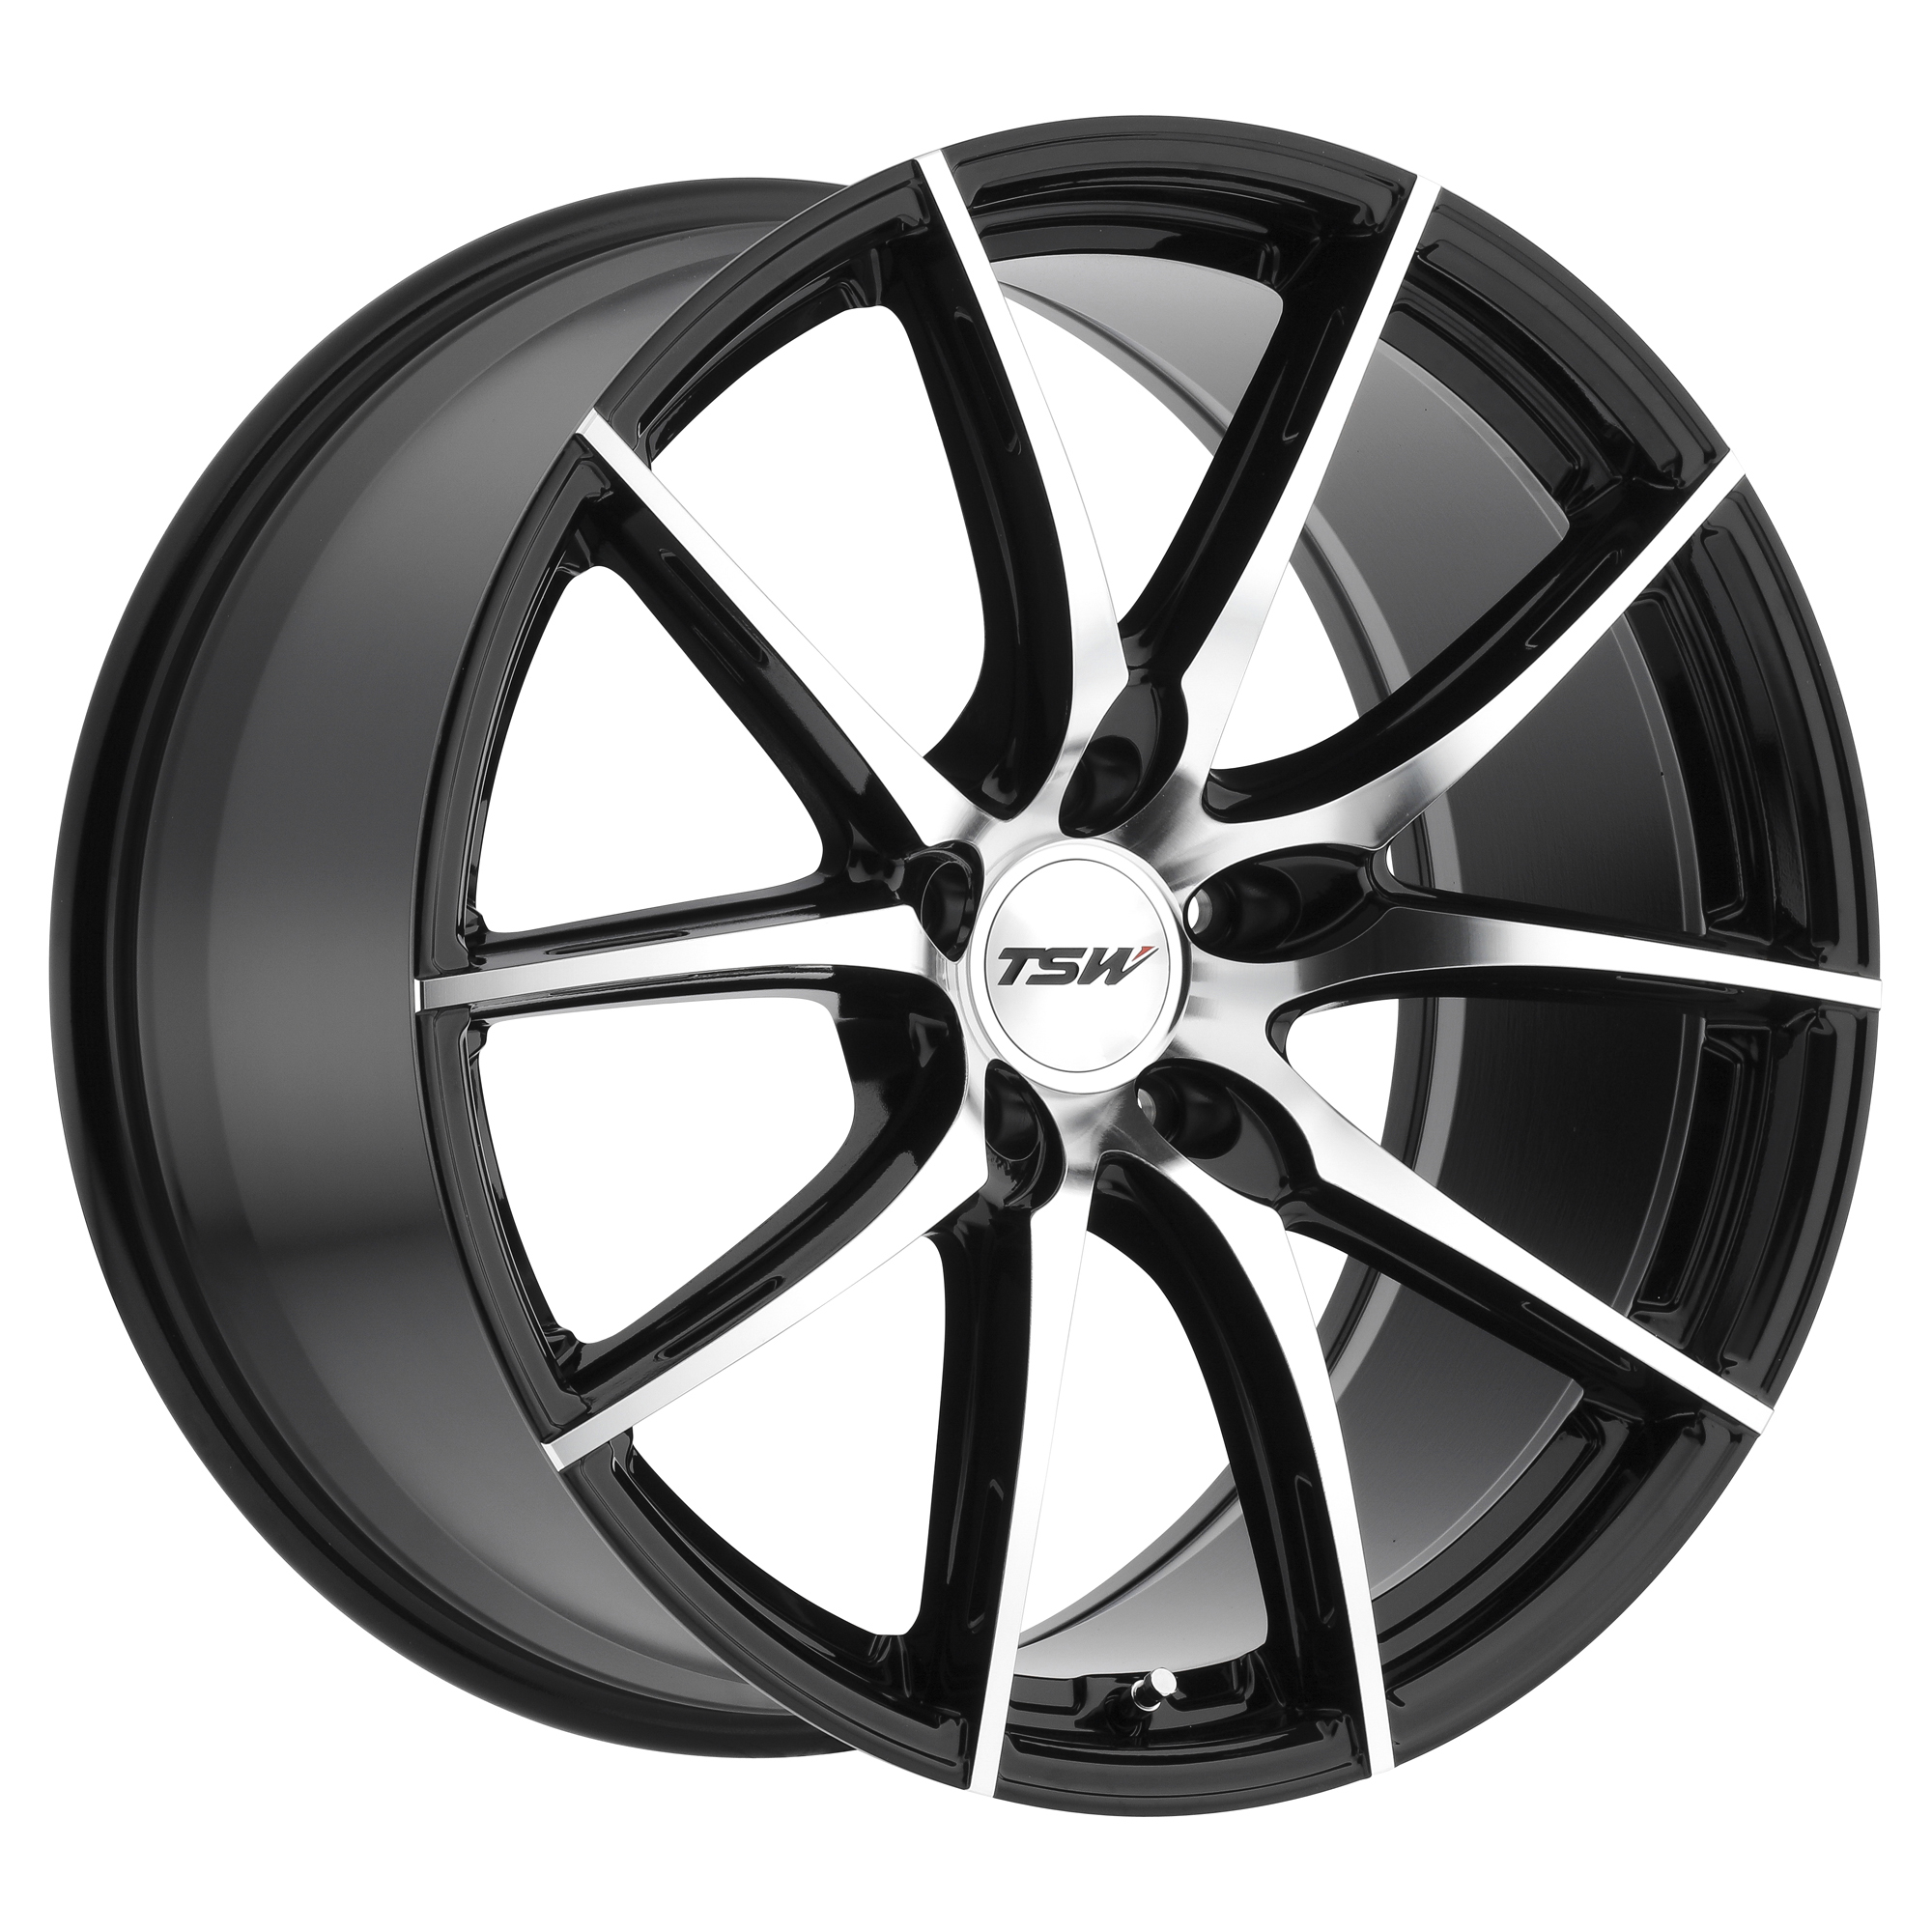 Sebring wheels sprint new wheels and rims by tsw